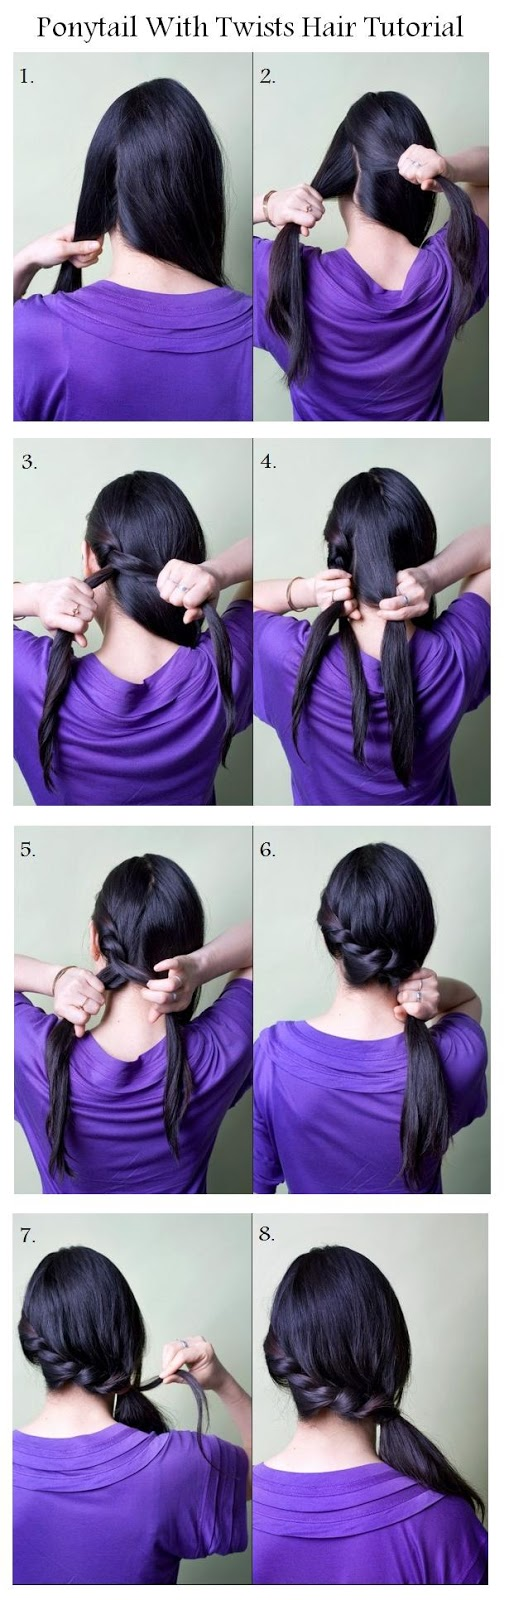 Ponytail With Twists Hair Tutorial